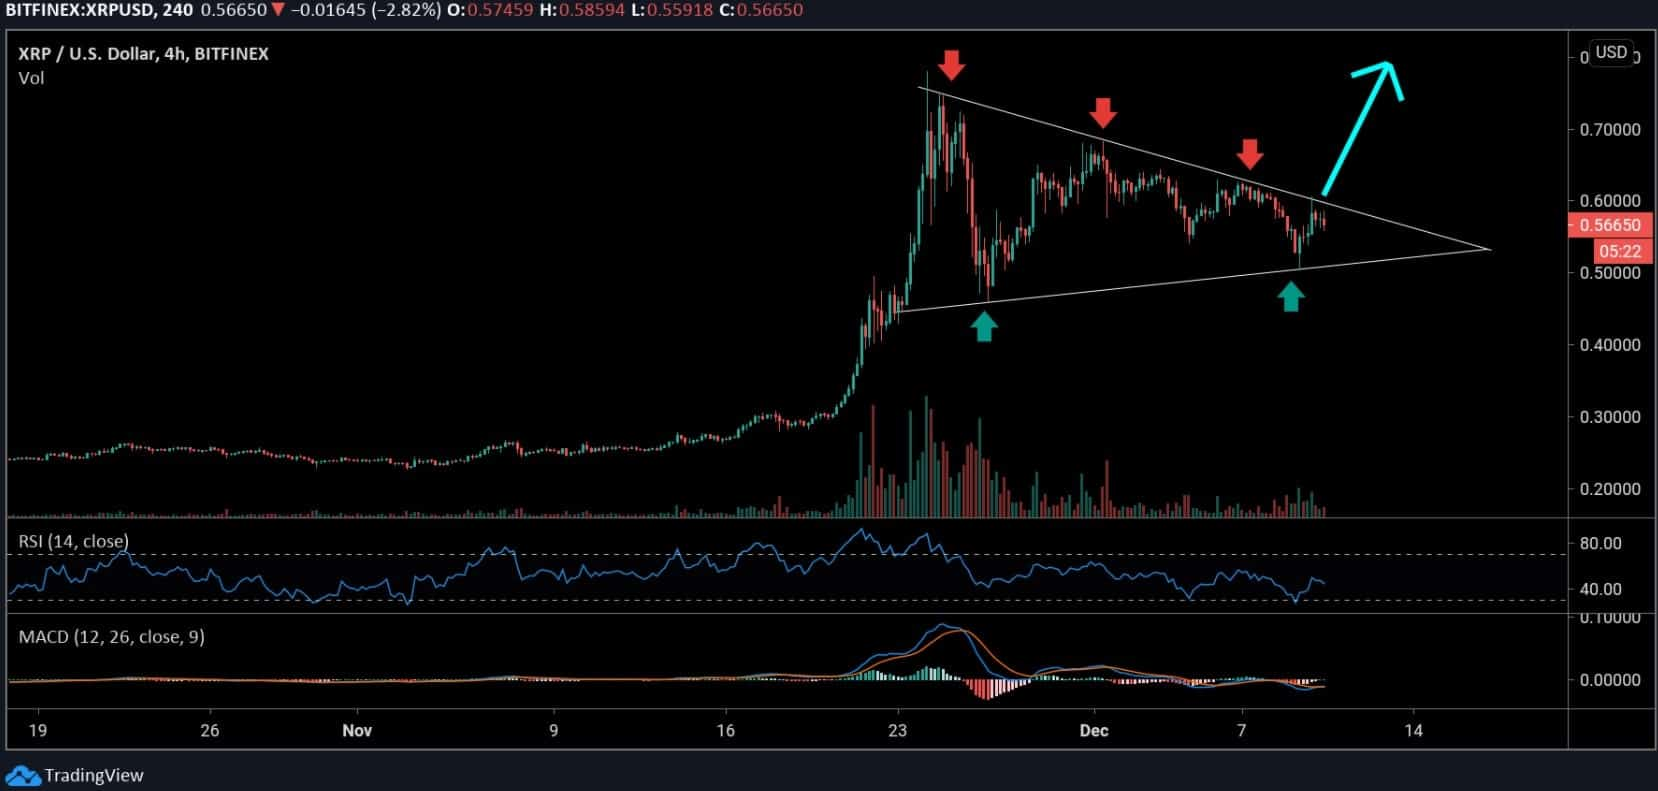 ripple-price-analysis-can-xrp-bulls-break-out-prior-to-spark-airdrop